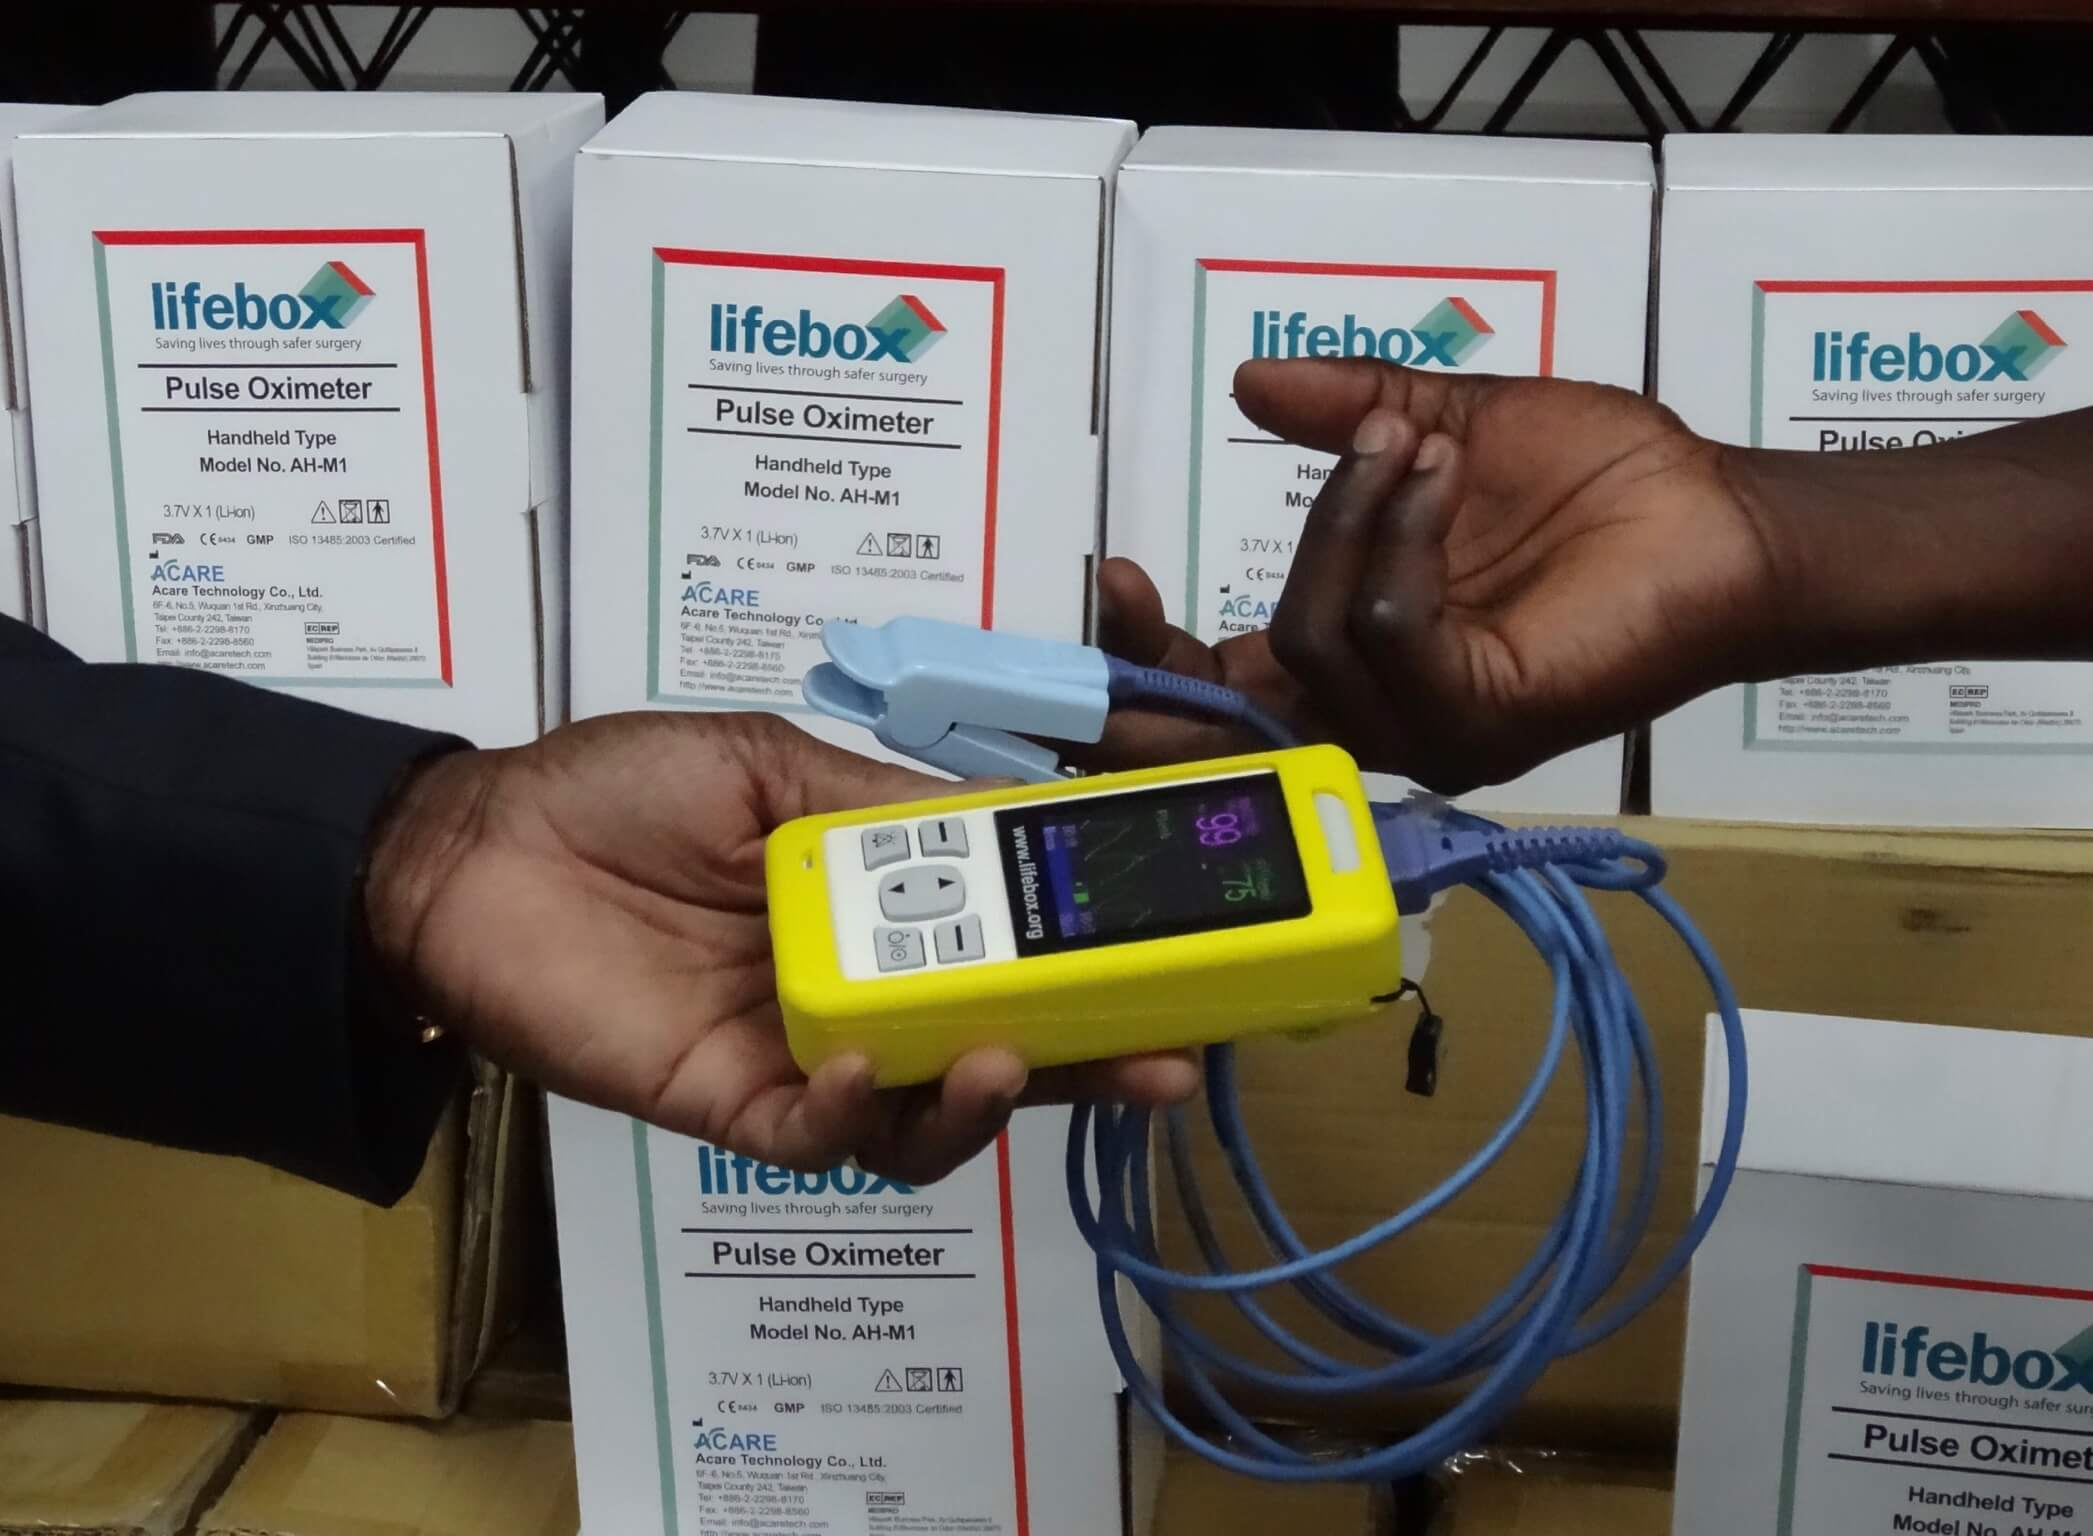 A pulse oximeter developed by Lifebox Foundation.